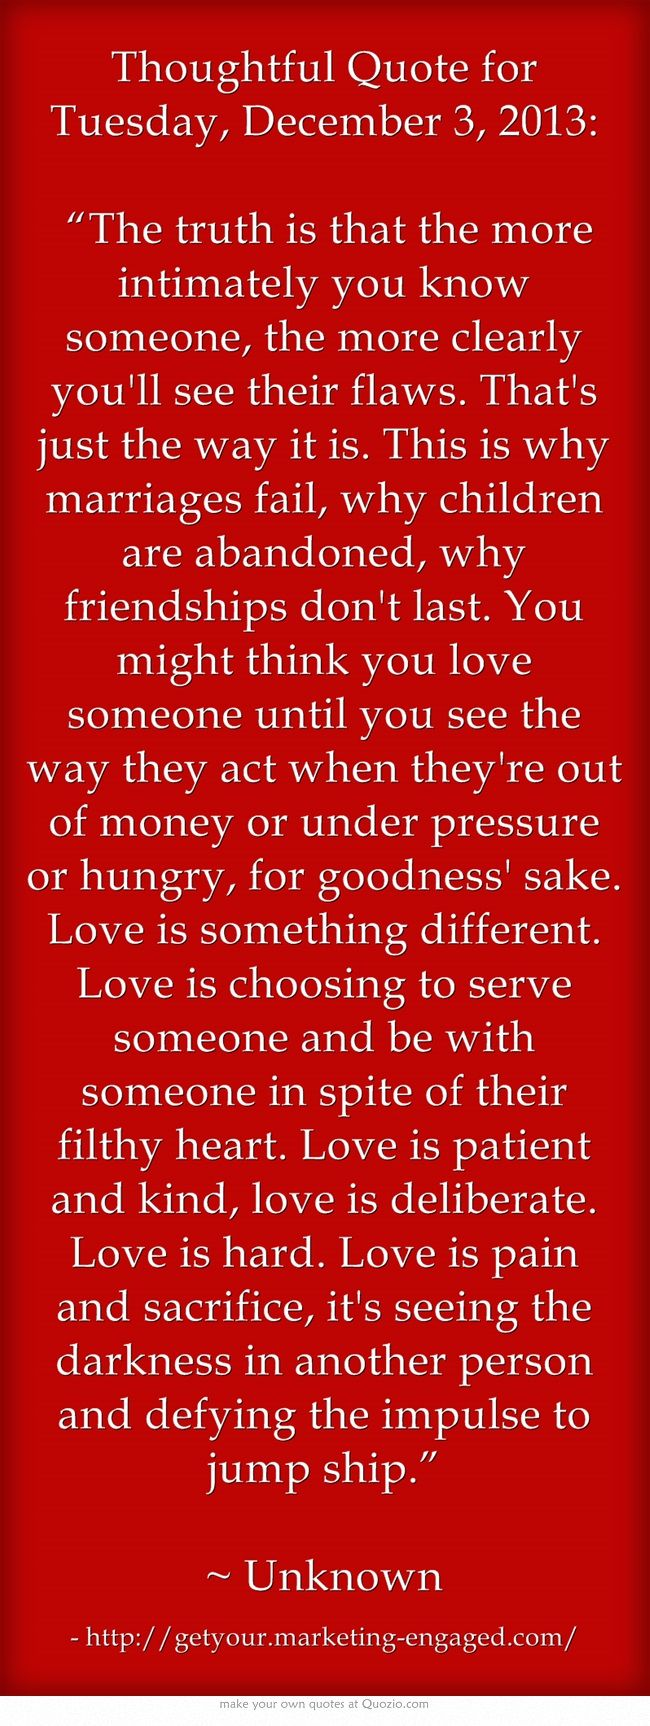 """Thoughtful Quote for Tuesday, December 3, 2013:  """"The truth is that the more intimately you know someone, the more clearly you'll see their flaws. That's just the way it is. This is why marriages fail, why children are abandoned, why friendships don't last. You might think you love someone until you see the way they act when they're out of money or under pressure or hungry, for goodness' sake. Love is something different. Love is choosing to serve someone and be with..."""